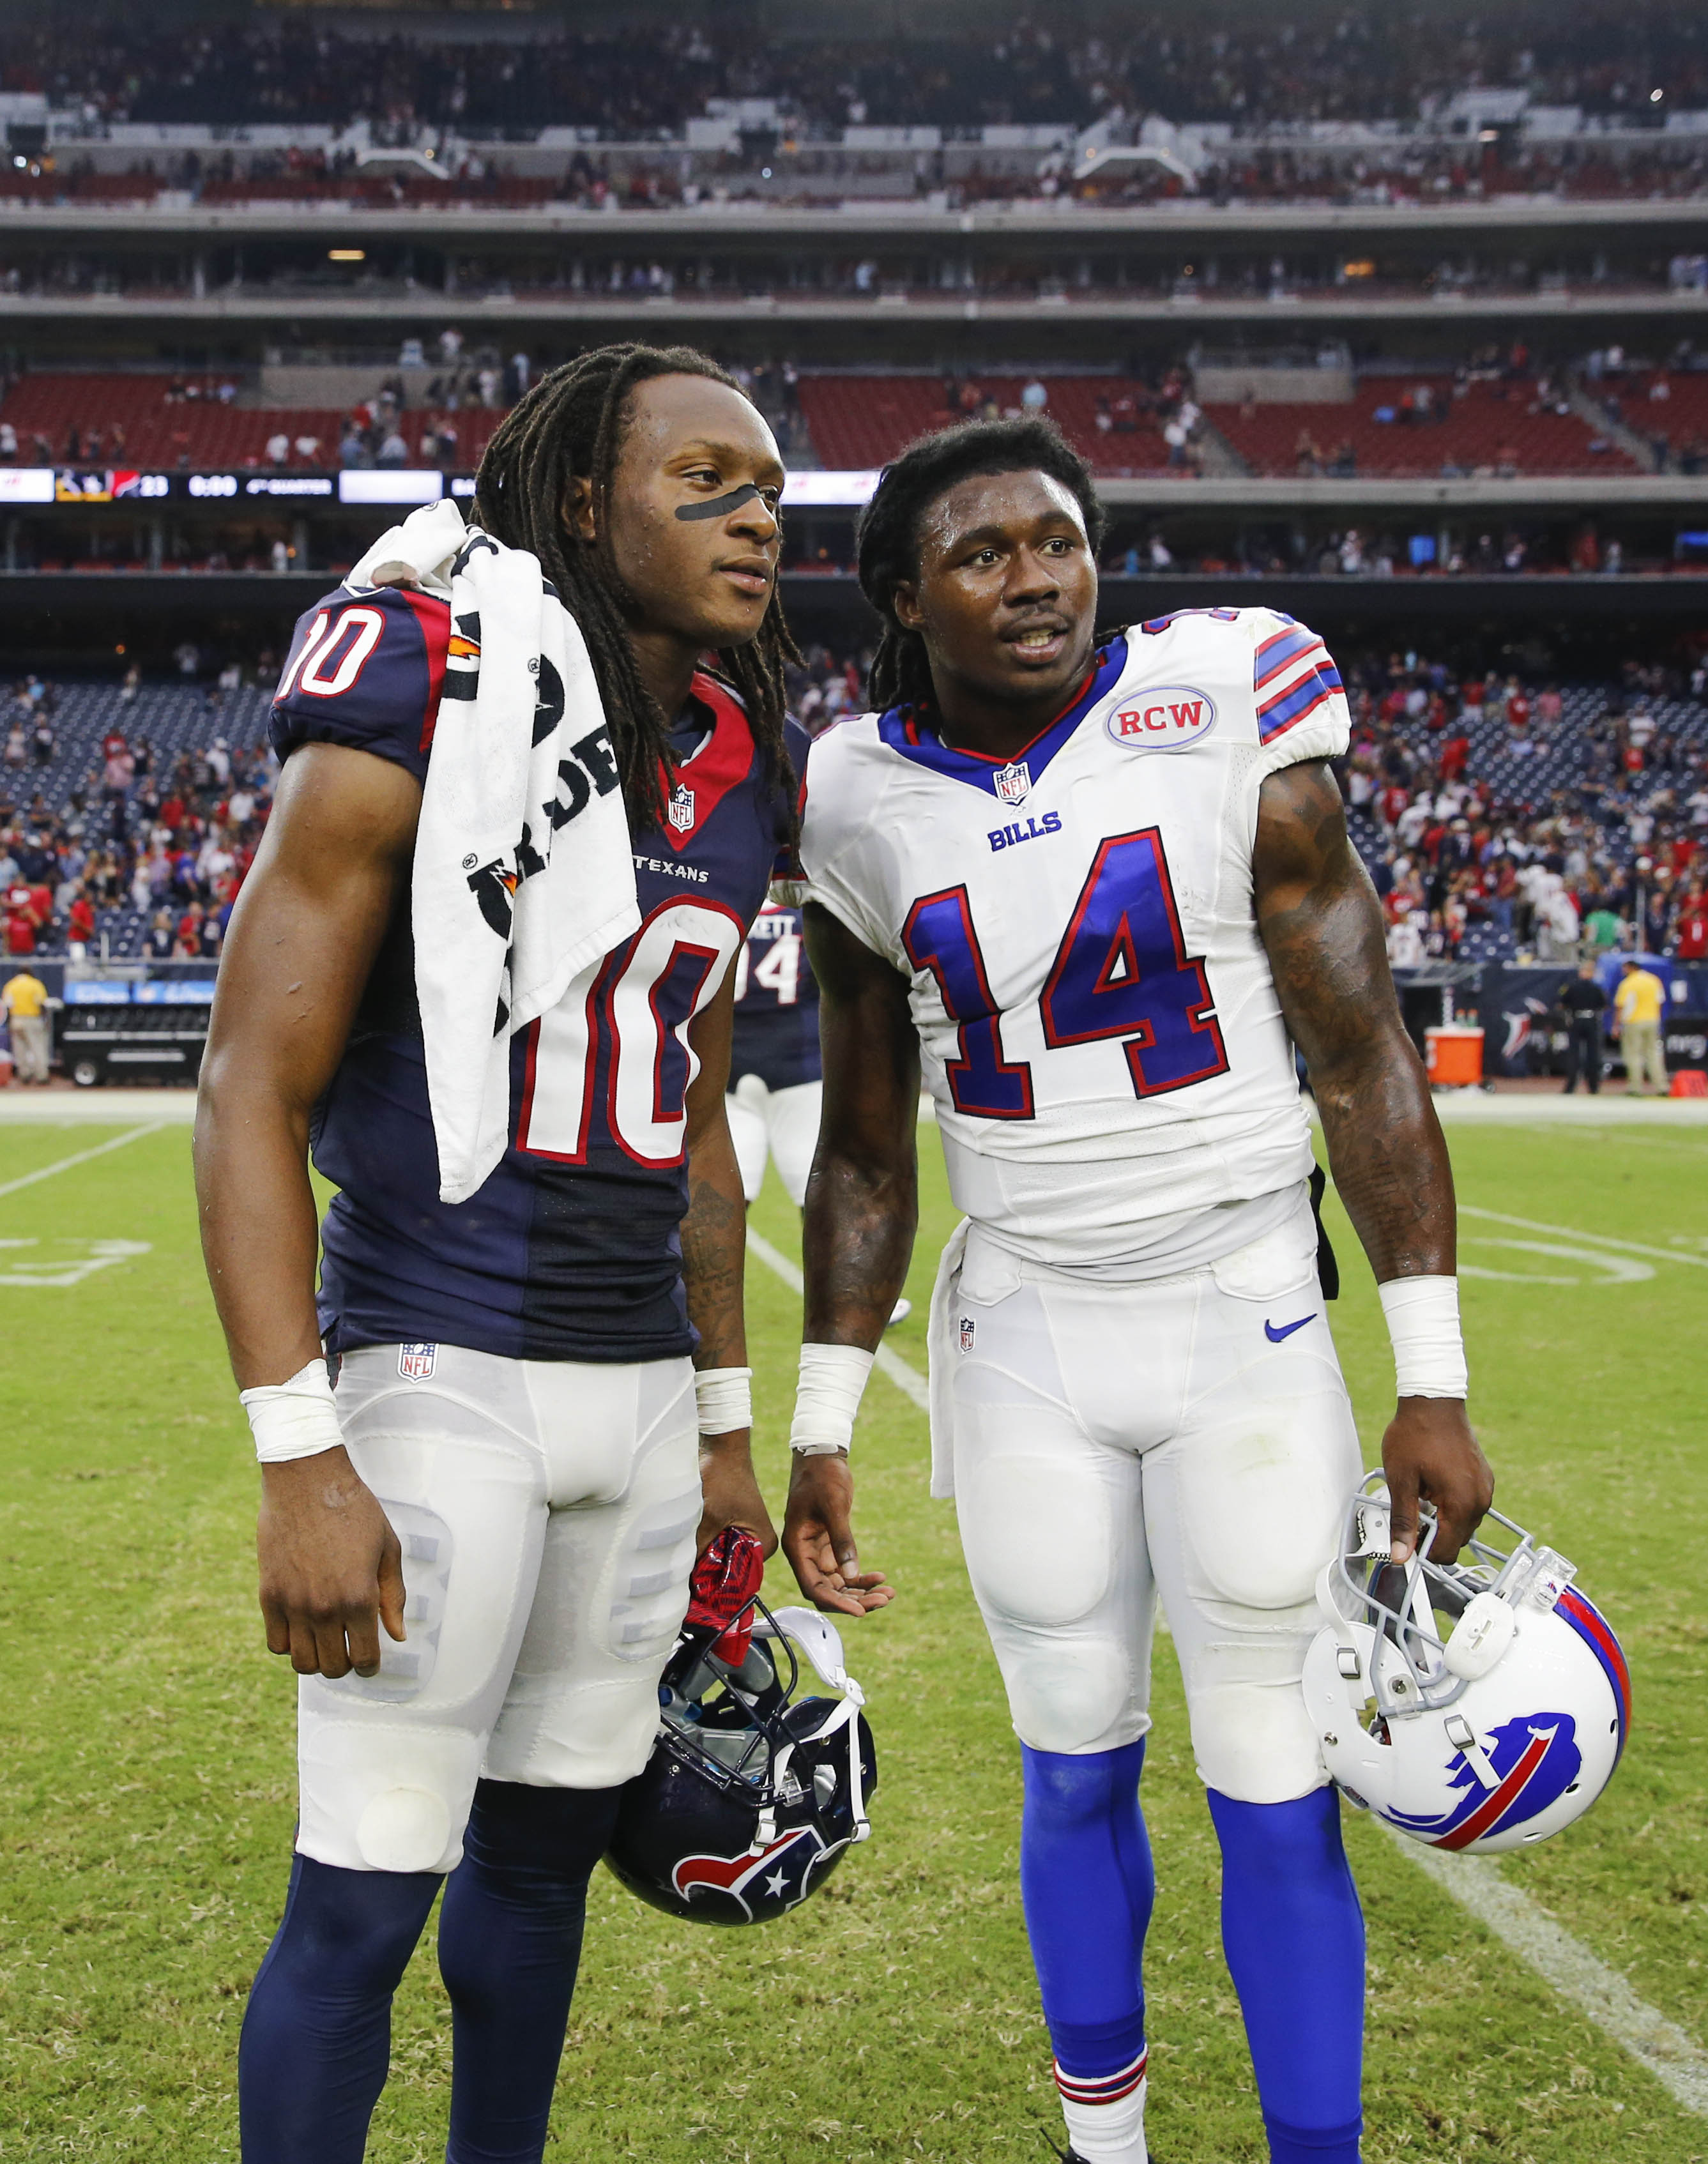 Two Clemson greats, performing well in the NFL.